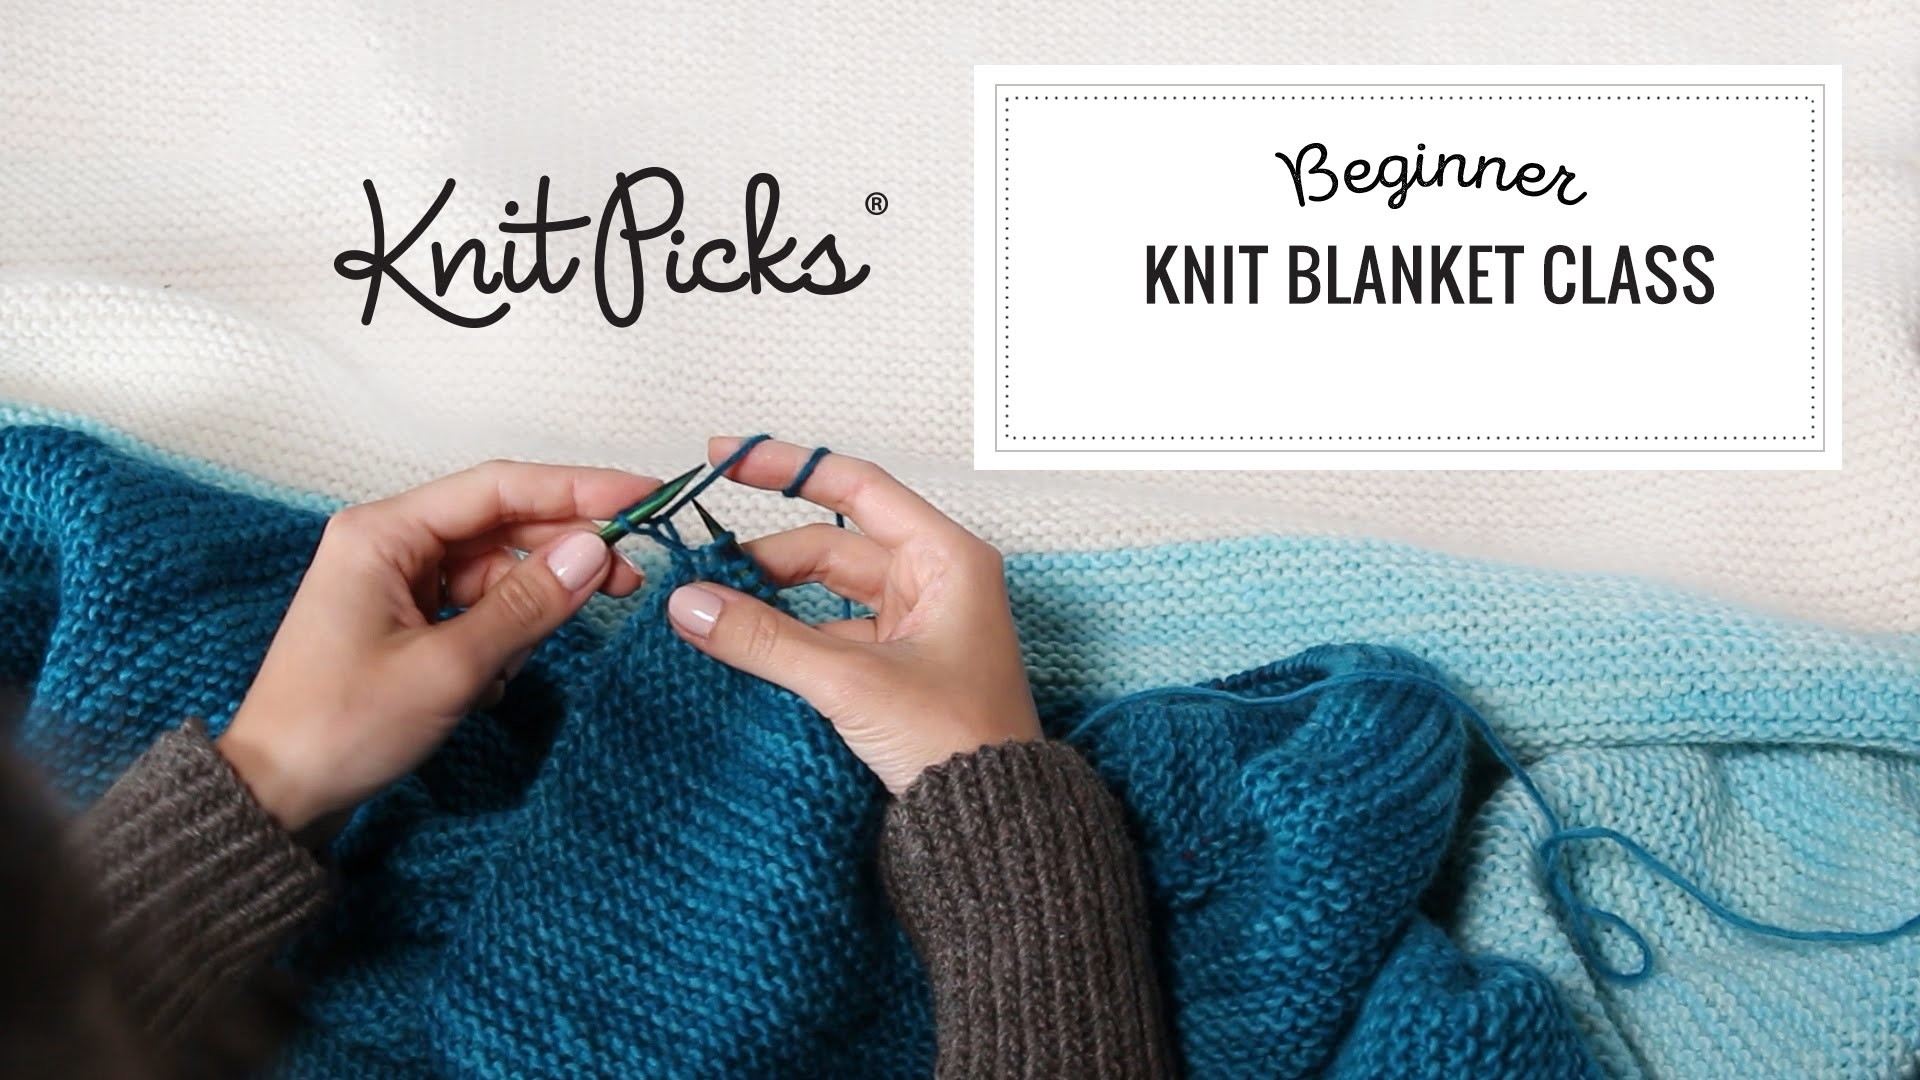 Beginner Knit Blanket Class, Part 7: Binding Off